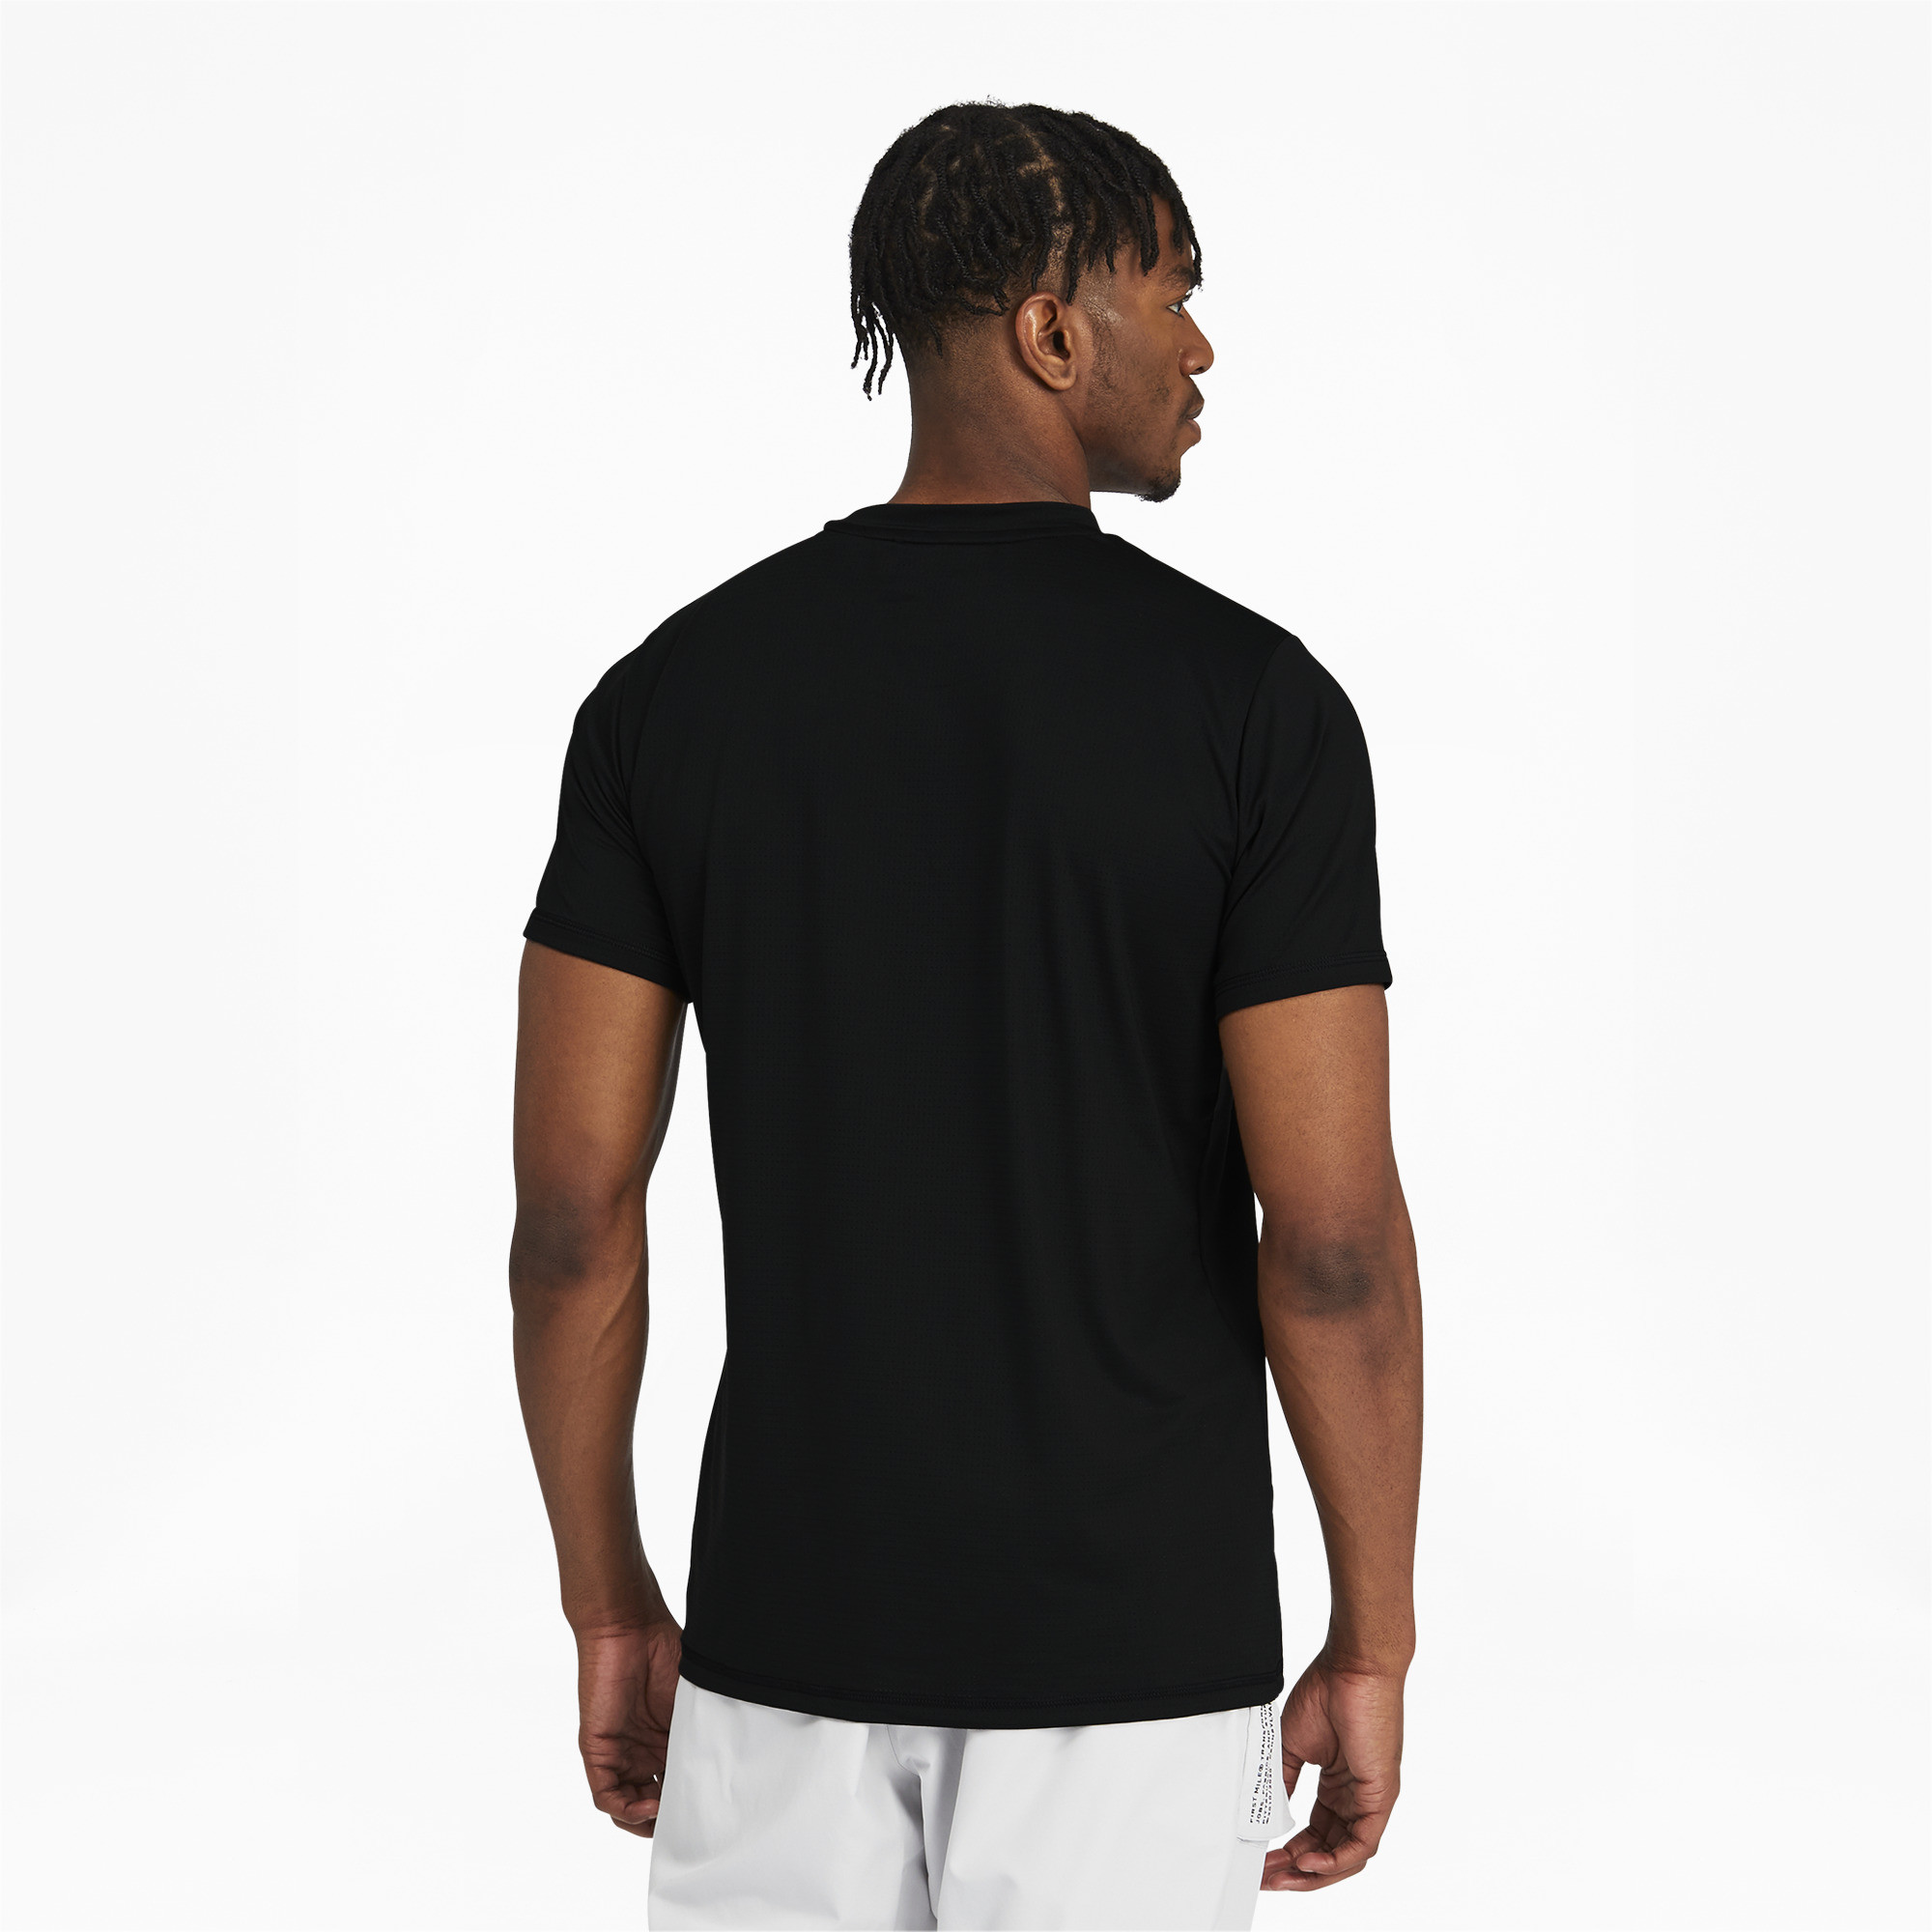 Aaron Tan - Uniqlo Black Soft Touch Top, Ministry Of